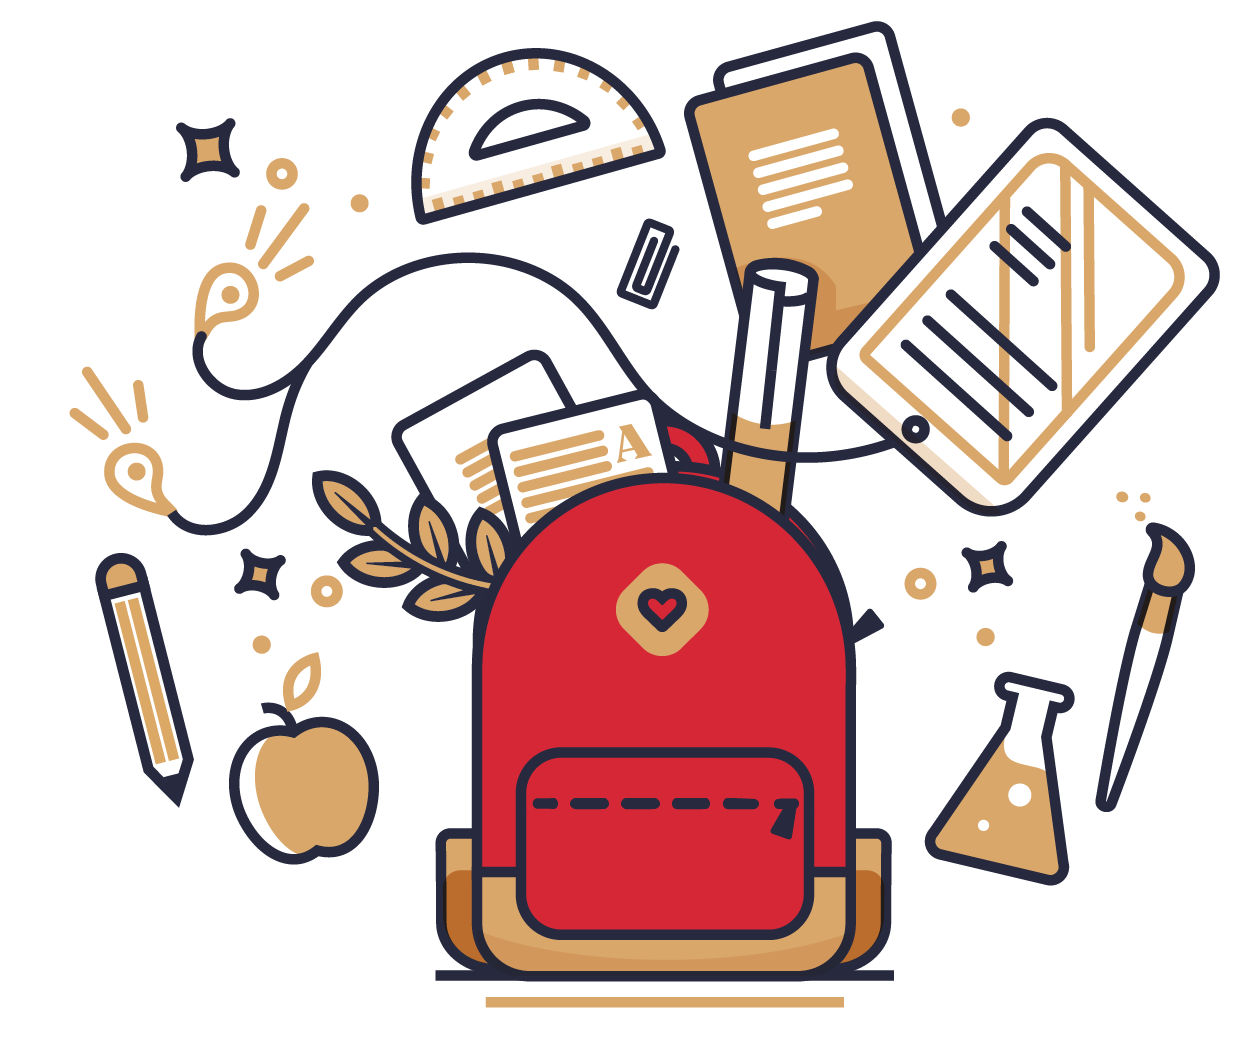 Illustration: Resources - Book bag with school subjects around